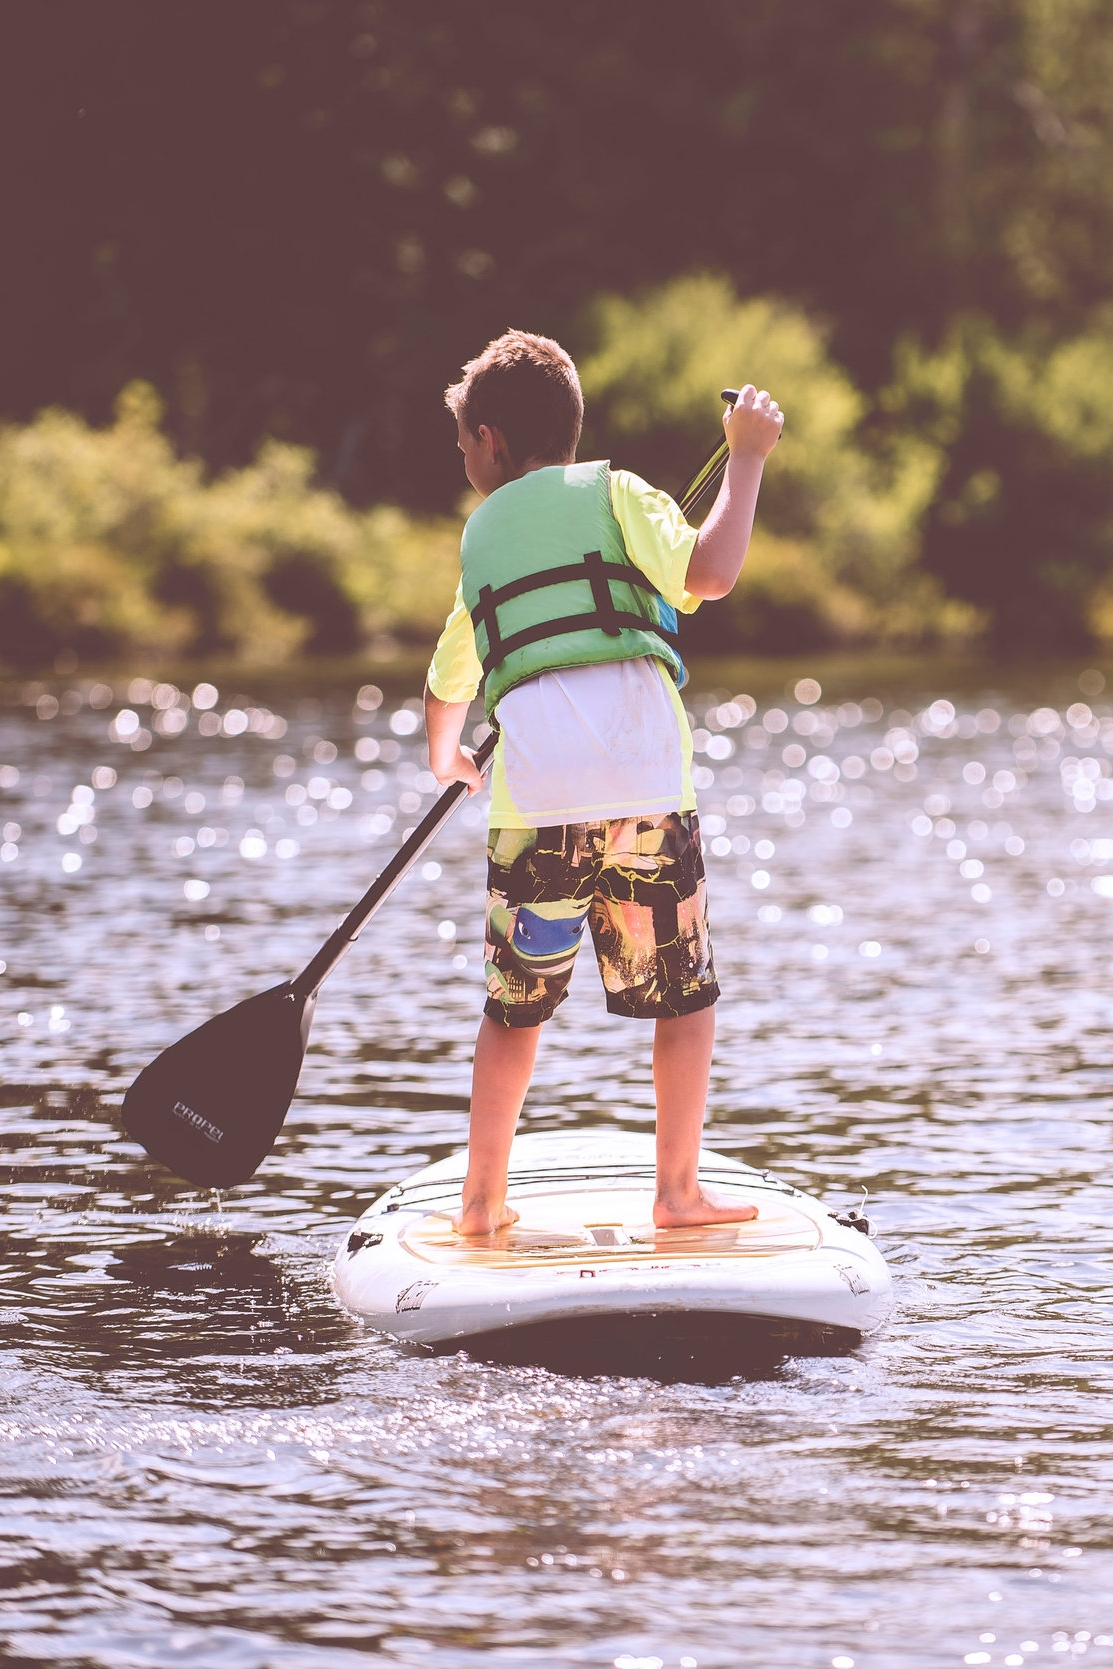 Paddle boarding - The Stand-Up Paddle Boarding craze has reached Salida and there is a fun, fairly mild, whitewater park that runs through town that is ideal for this sport. You can rent an SUP at Surf Salida downtown.